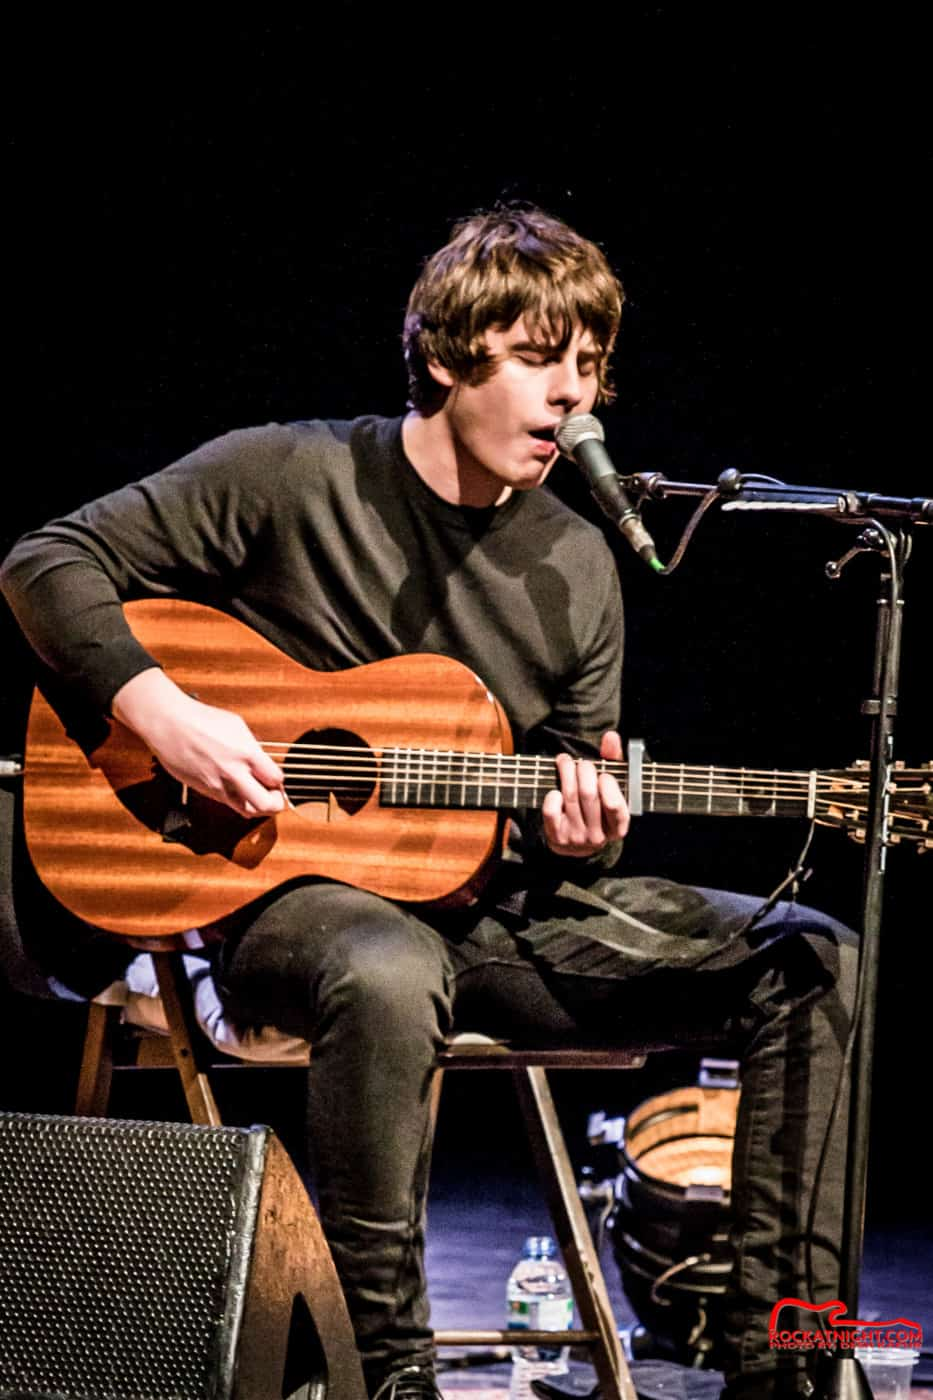 jake bugg 3 (1 of 1)